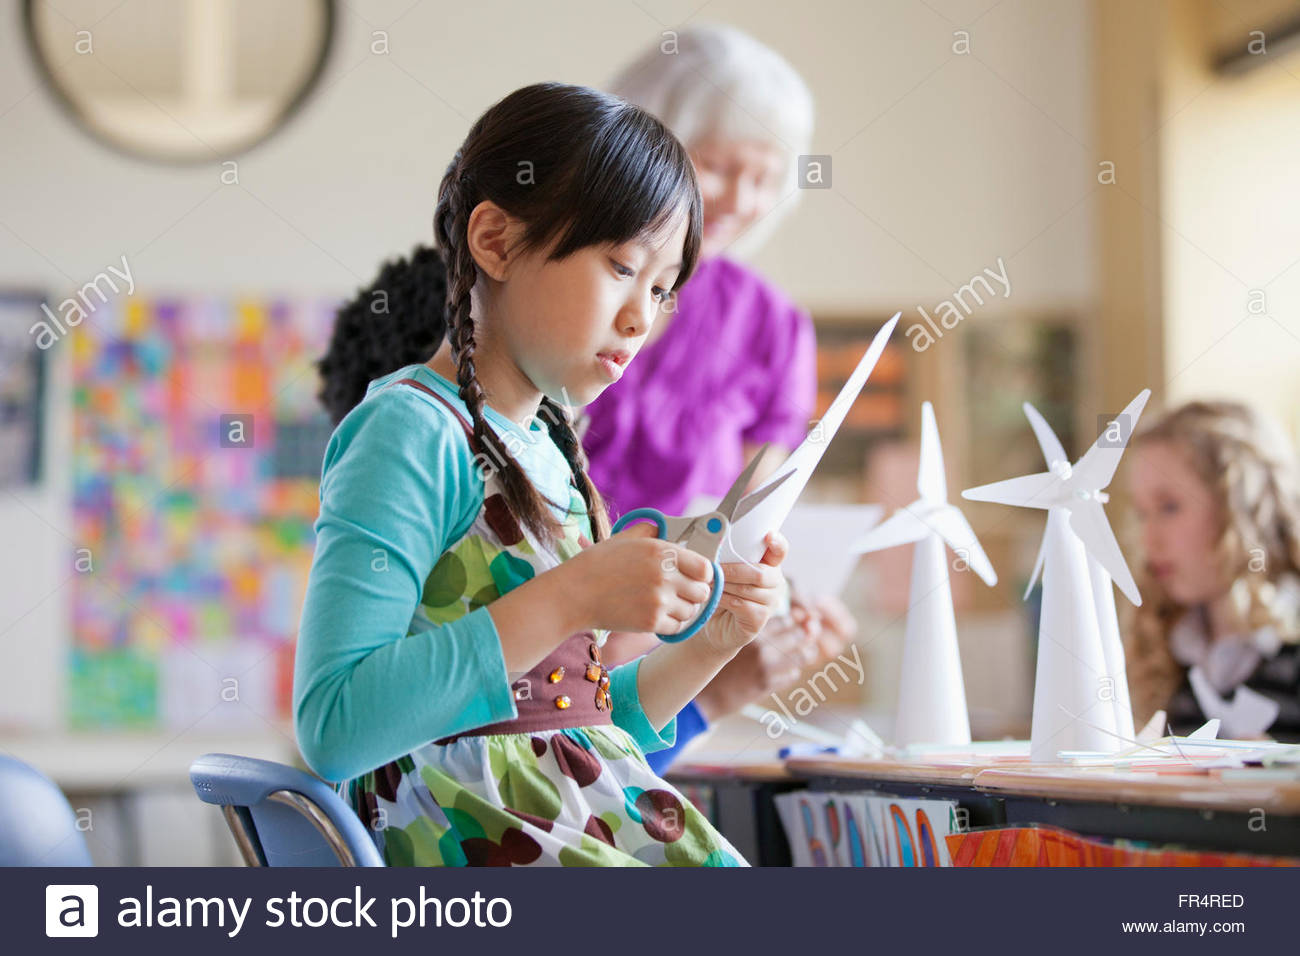 elementary student creating wind turbine models - Stock Image